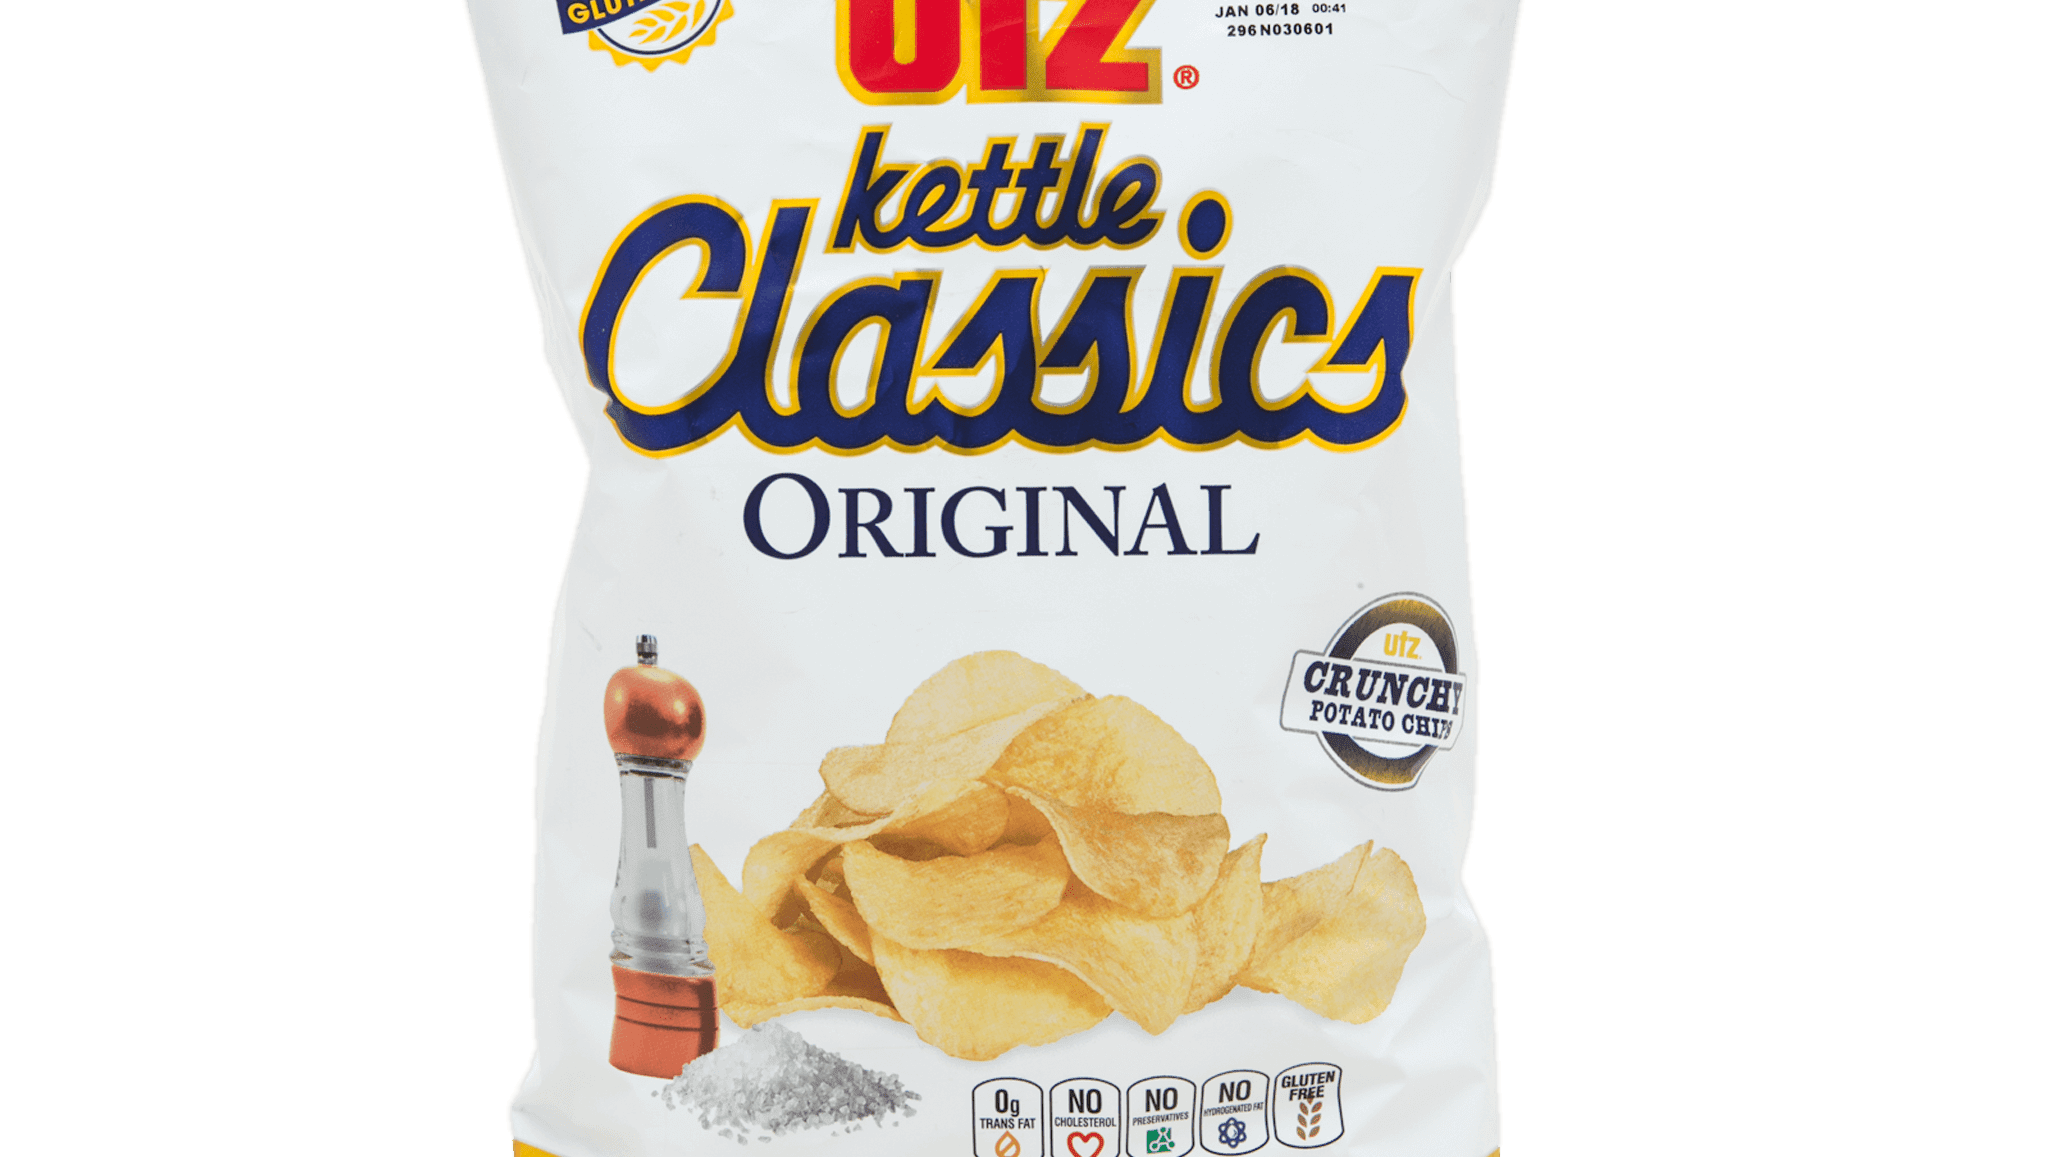 41794 sil chips utz utz kettle classics original potato chips 23